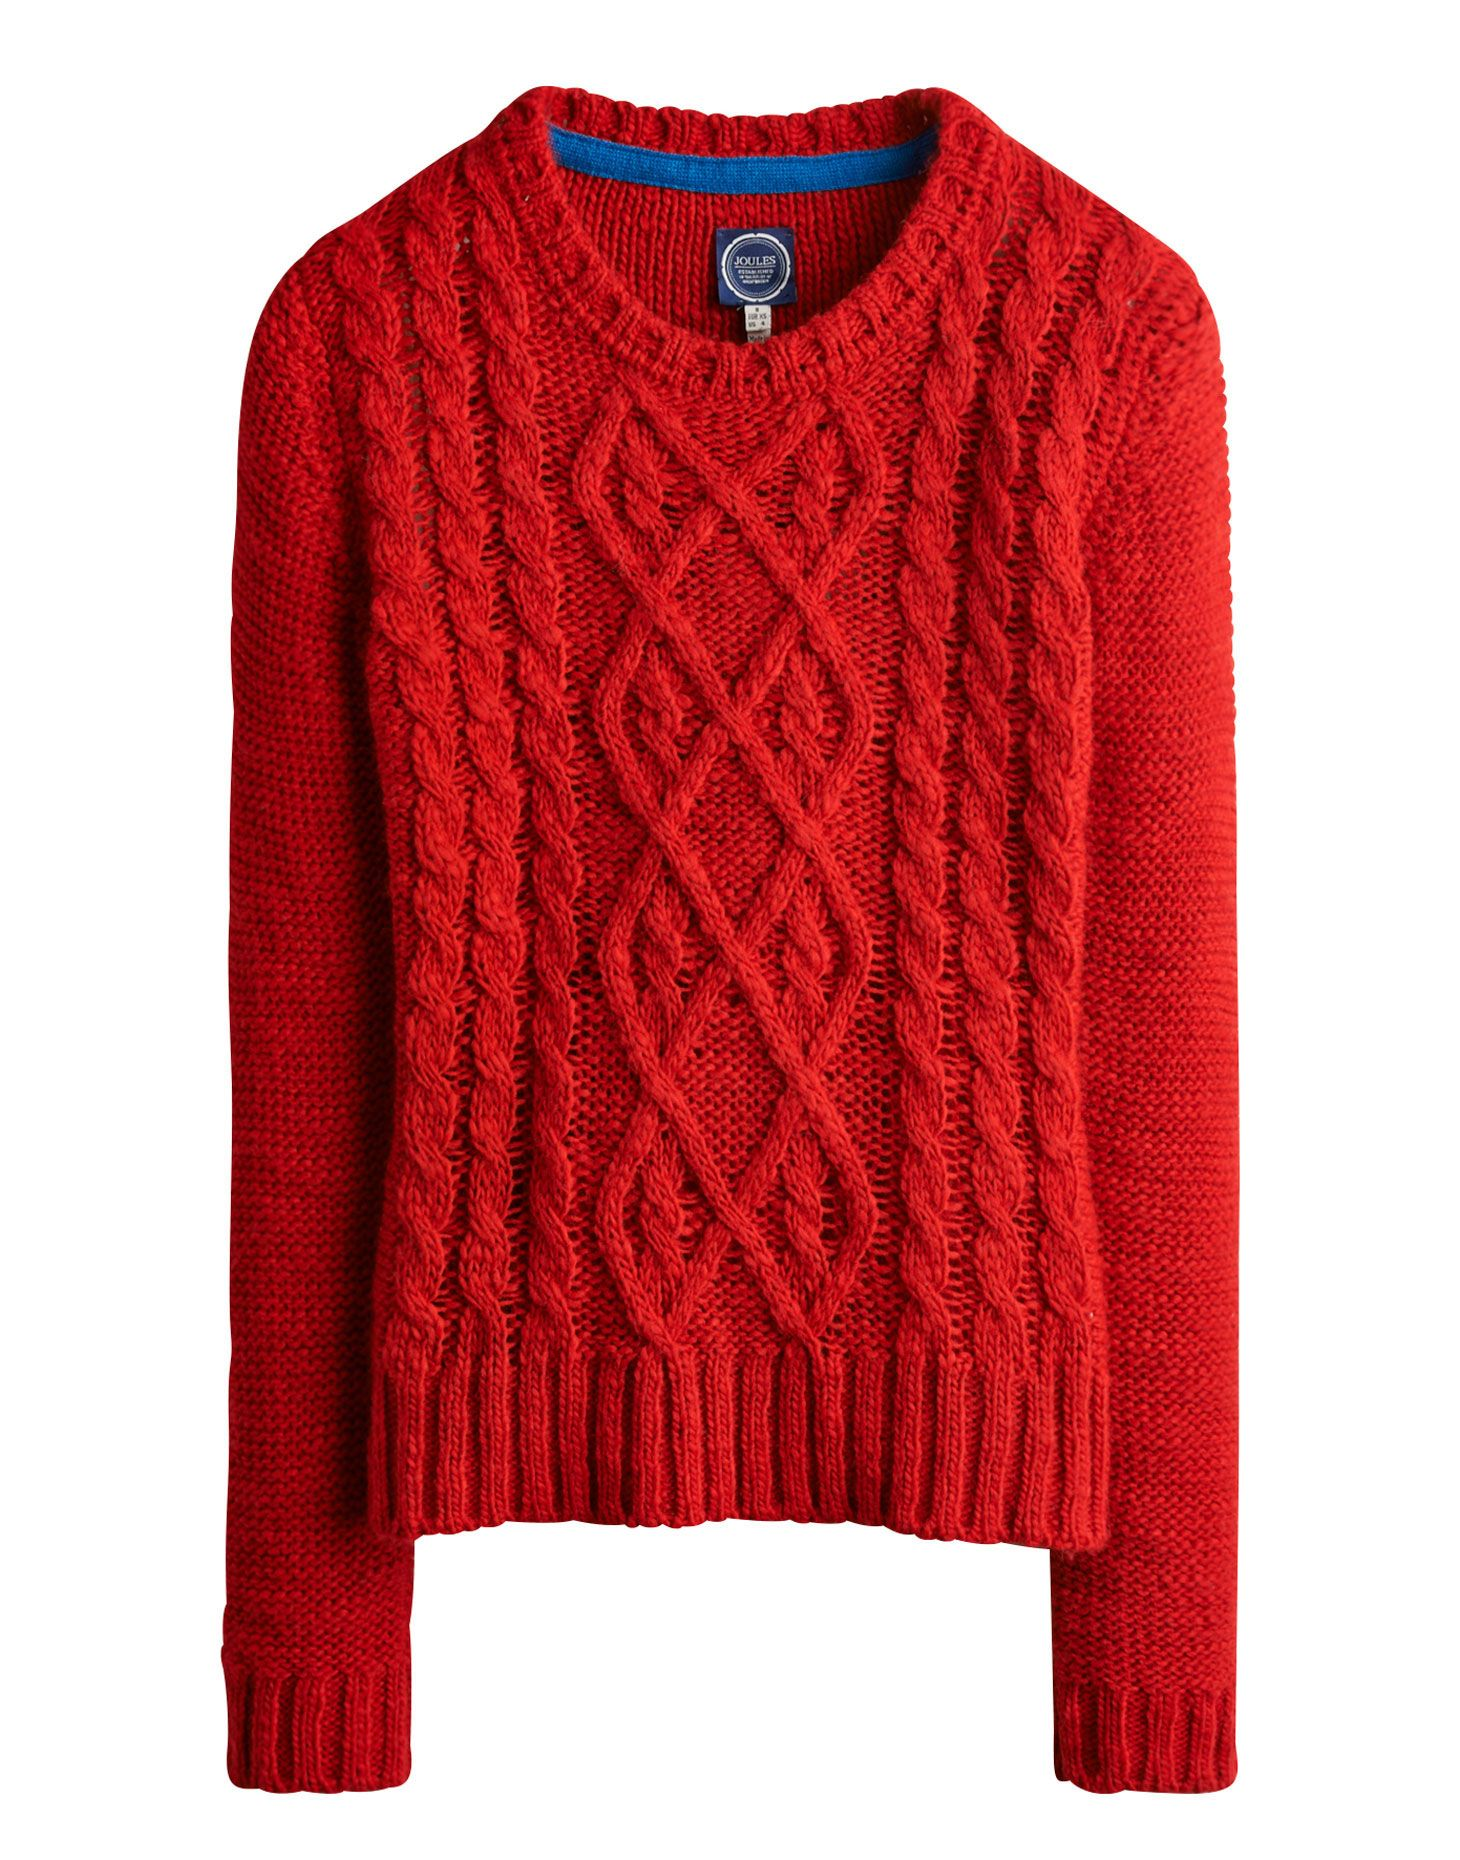 ladies red cable knit jumper | AVELYN Womens Cable Knit Jumper ...